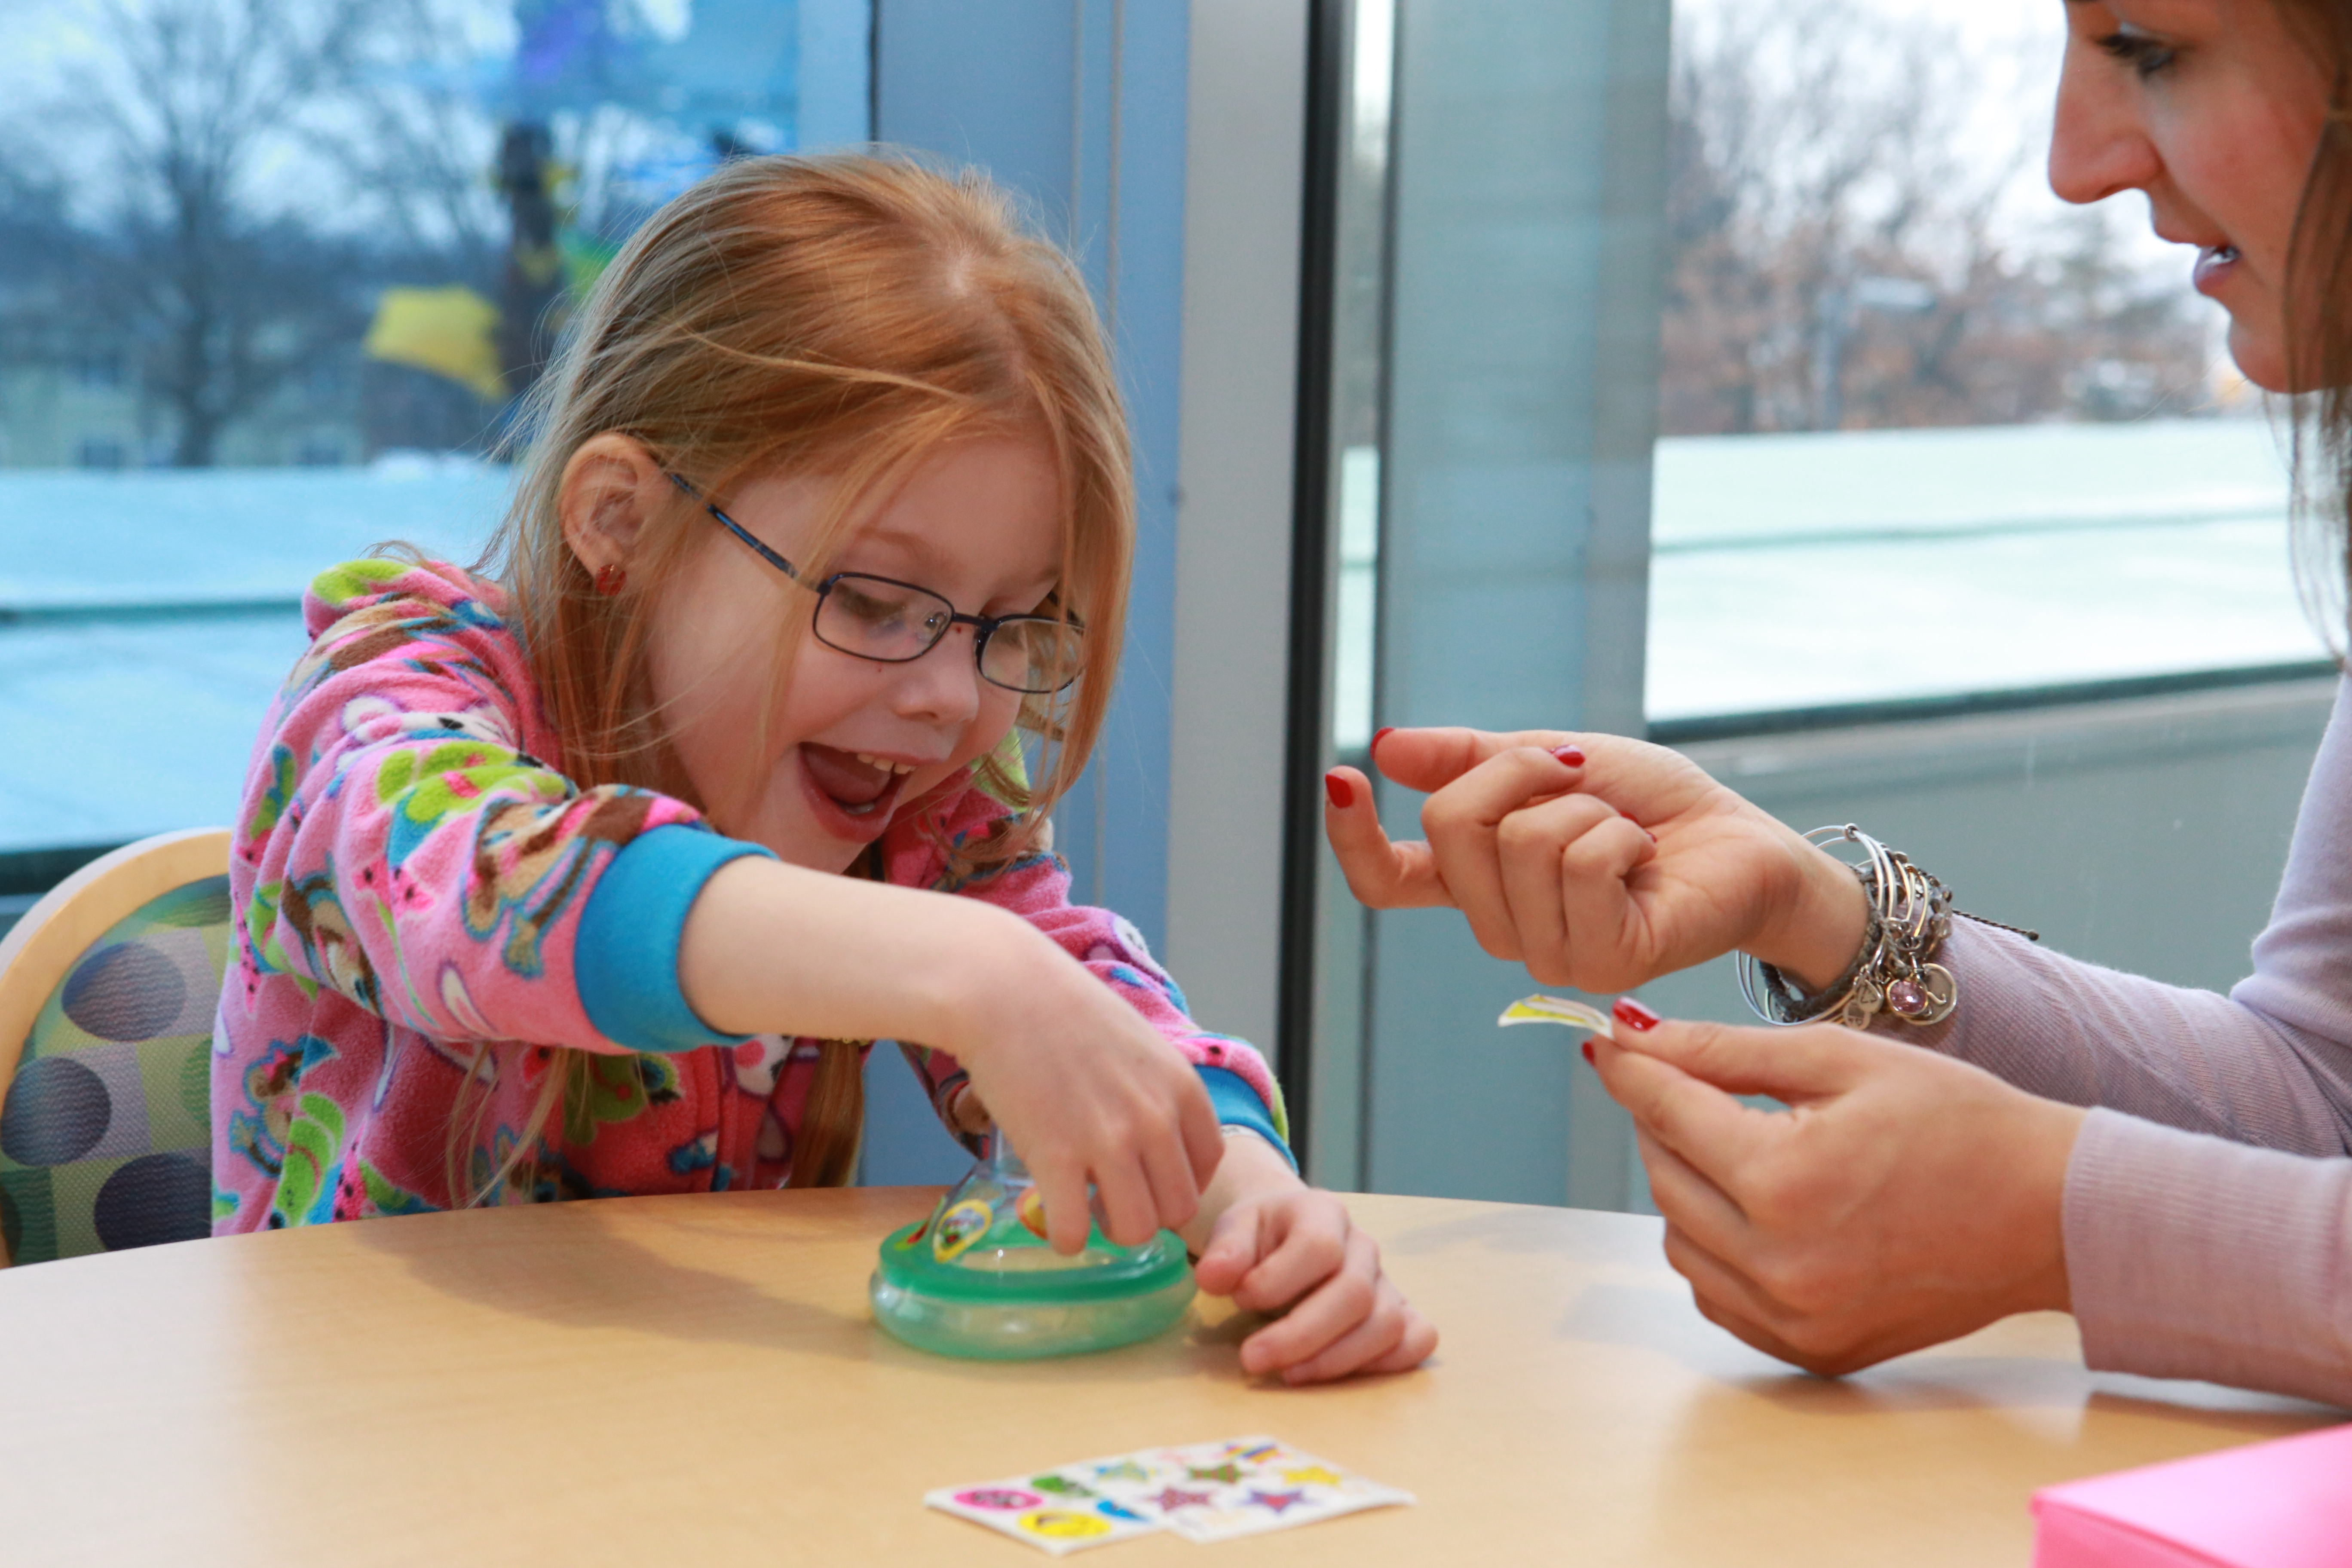 """Kate Denlinger, certified child life specialist helps patient Kaitlyn Teeter, 5, decorate her anesthesia mask with stickers prior to a procedure she regularly receives at Penn State Hershey Children's Hospital. """"Instead of coping with a bad diagnosis, she just has to cope with the routine of coming in so that she can continue being healthy,"""" Kate says."""